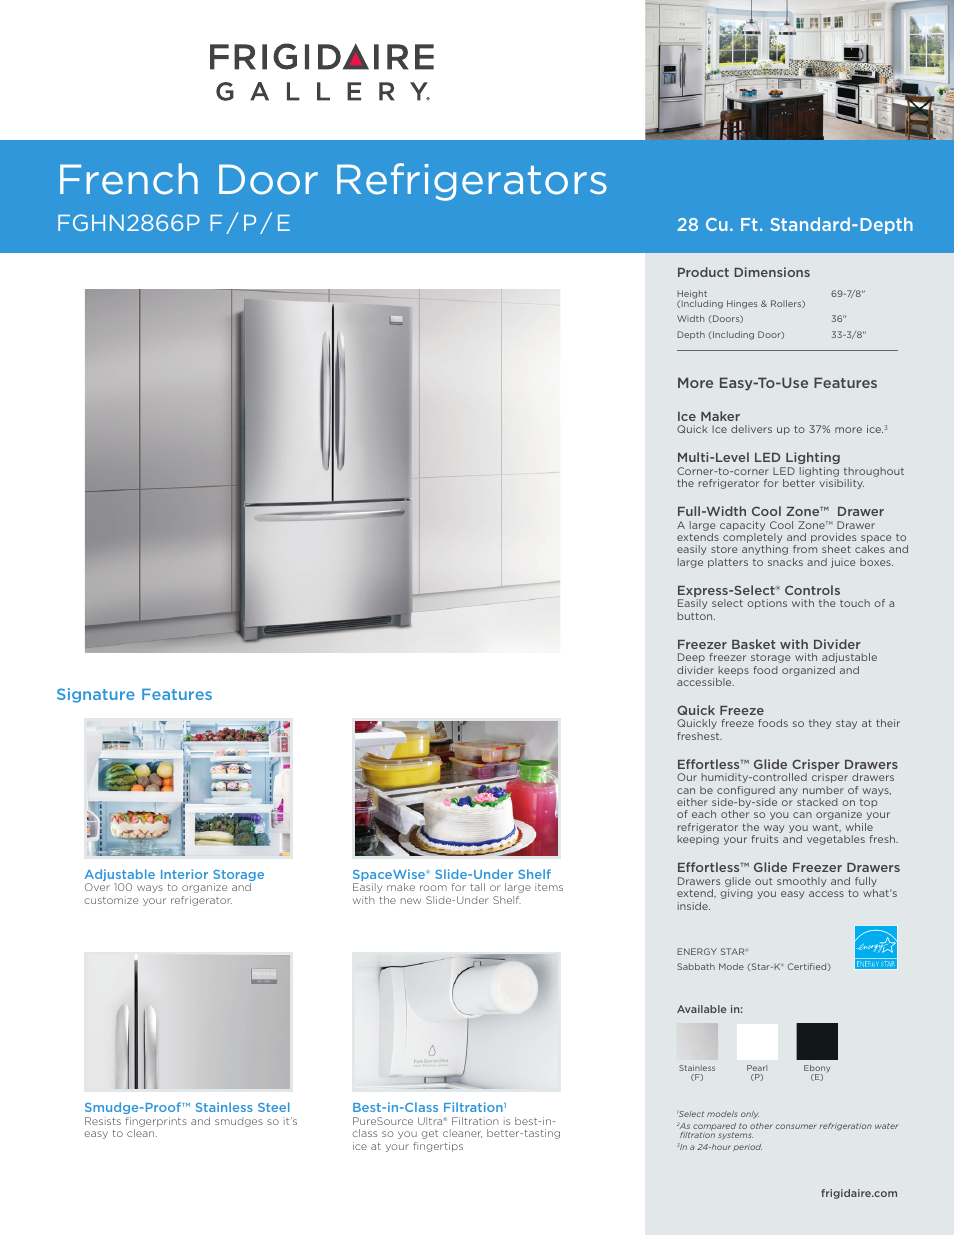 FRIGIDAIRE FGHN2866PP User Manual   4 pages   Also for: FGHN2866PE,  FGHN2866PF